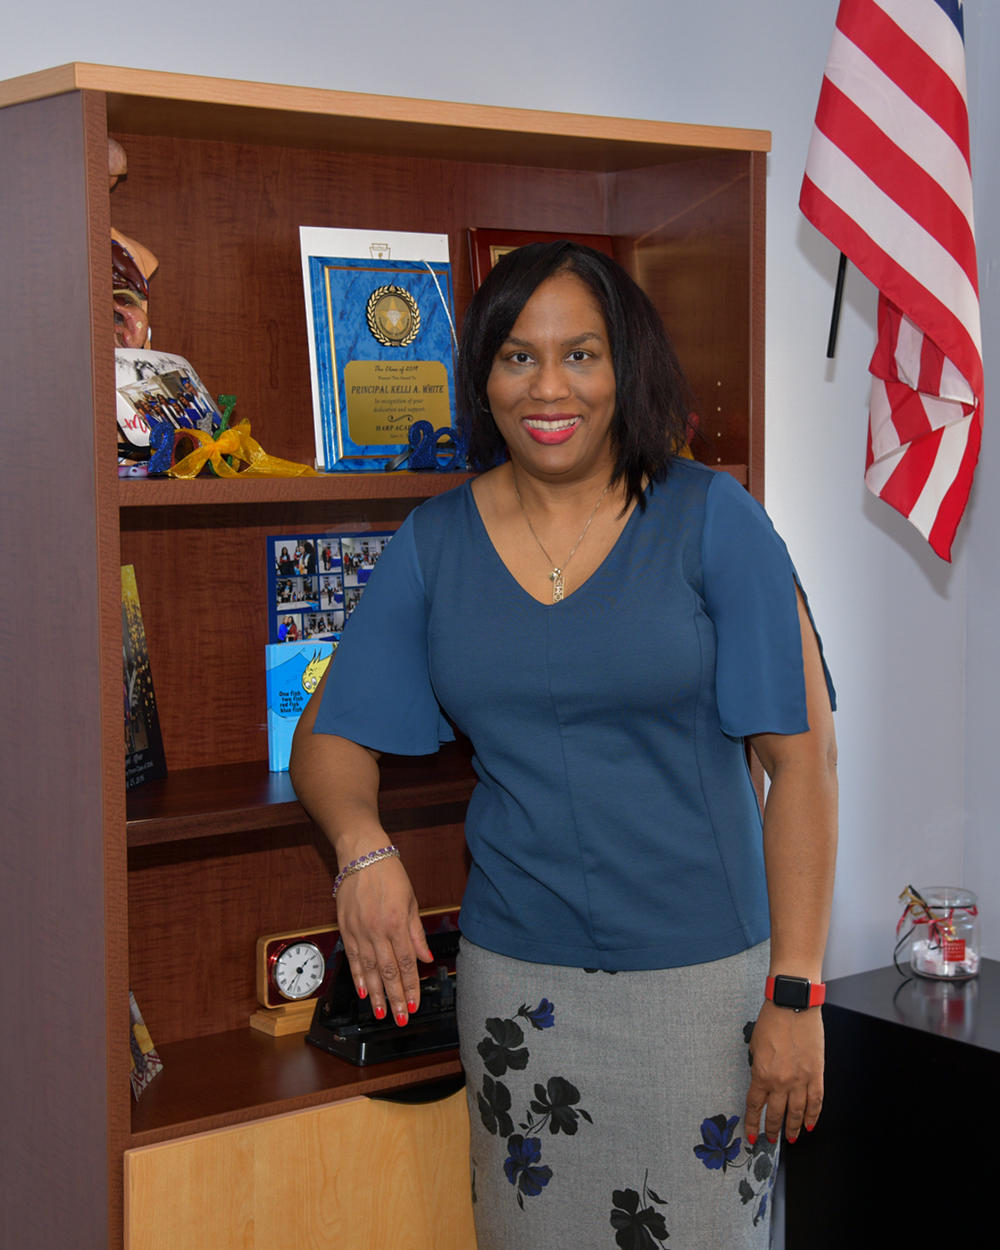 Principal White in her office